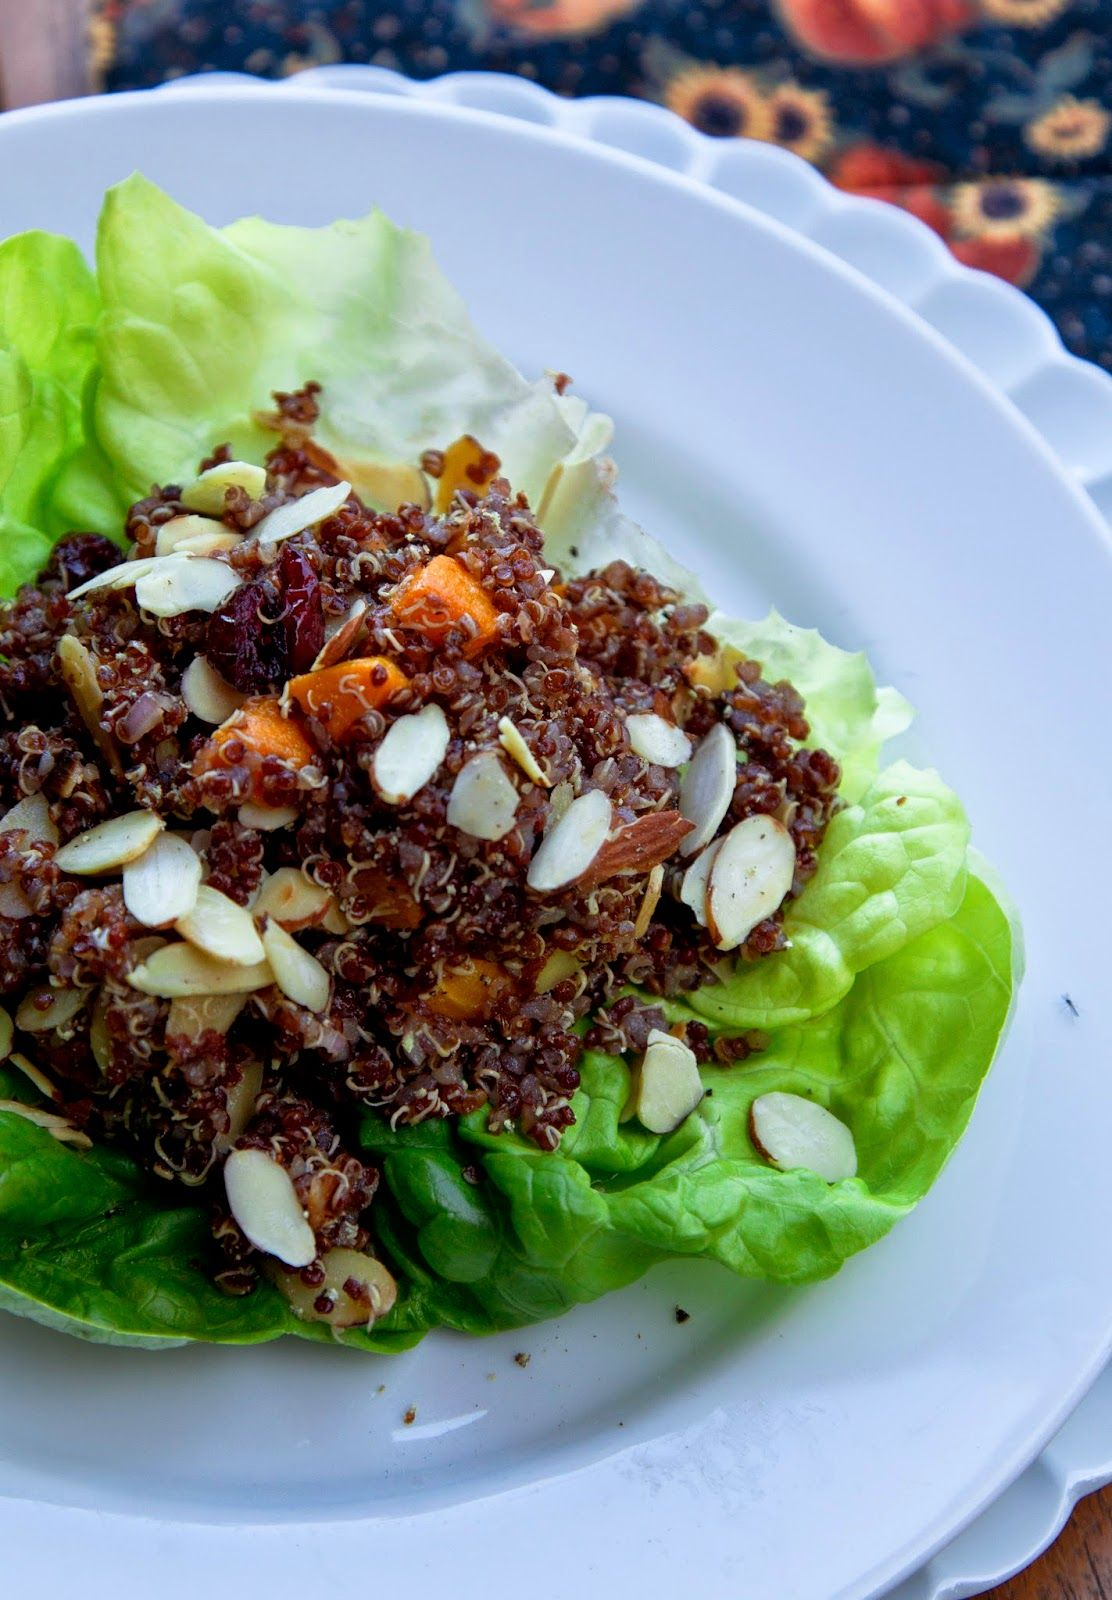 A Cook's Memoir - Inspired recipes from our travels to many exotic lands: Nutty-Tasting Red Quinoa Salad With Roasted Butter...